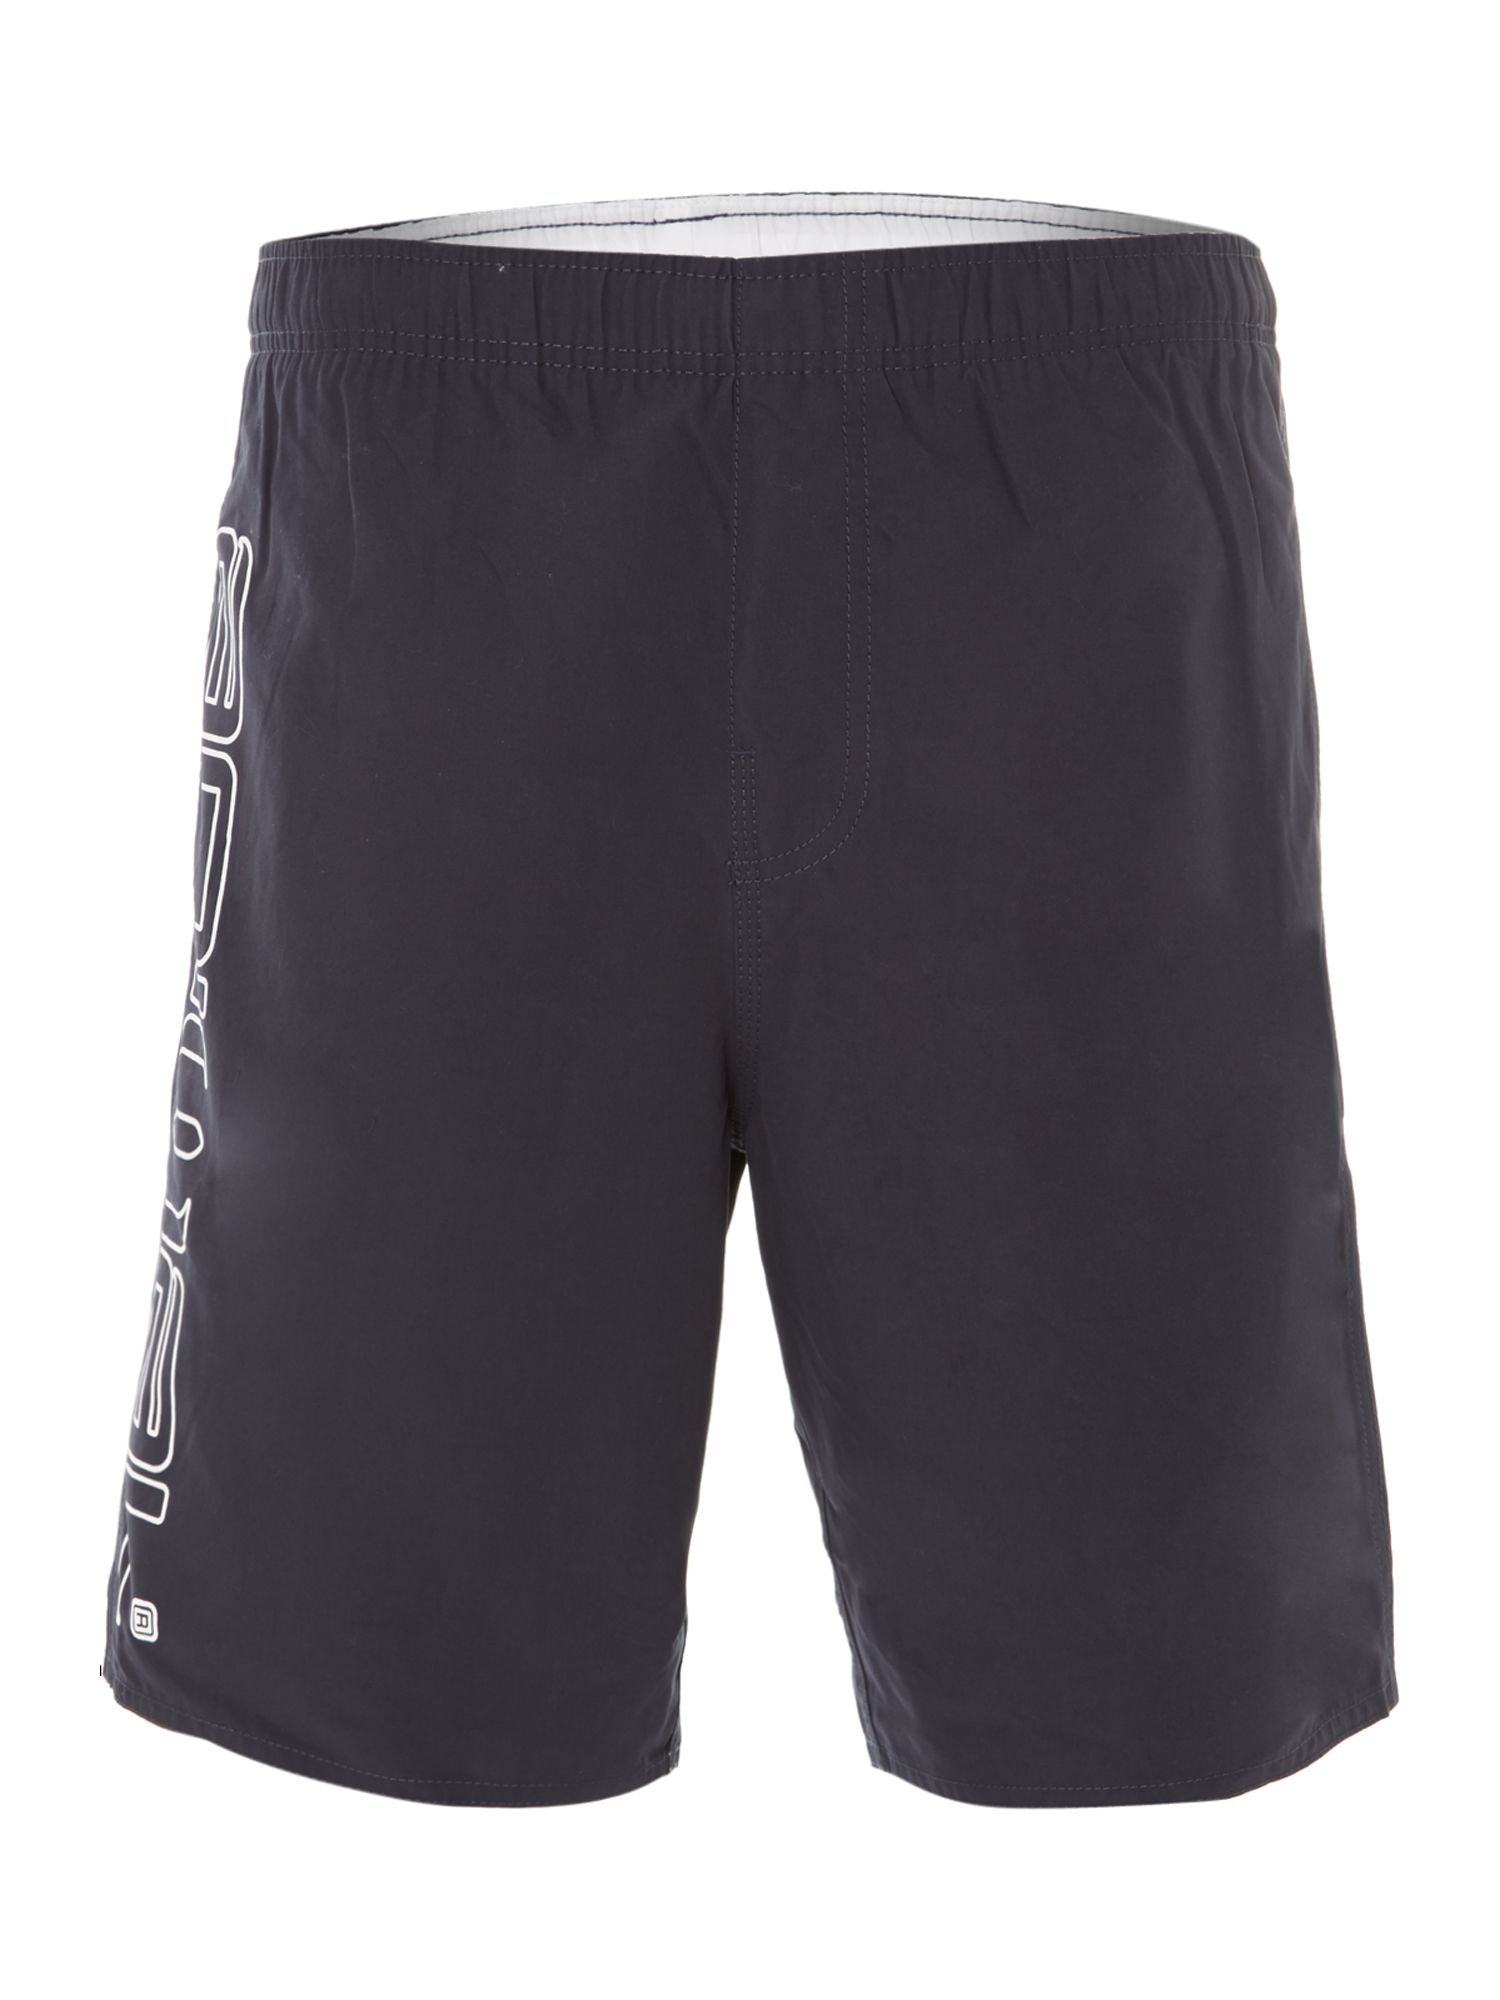 Bello boardshorts